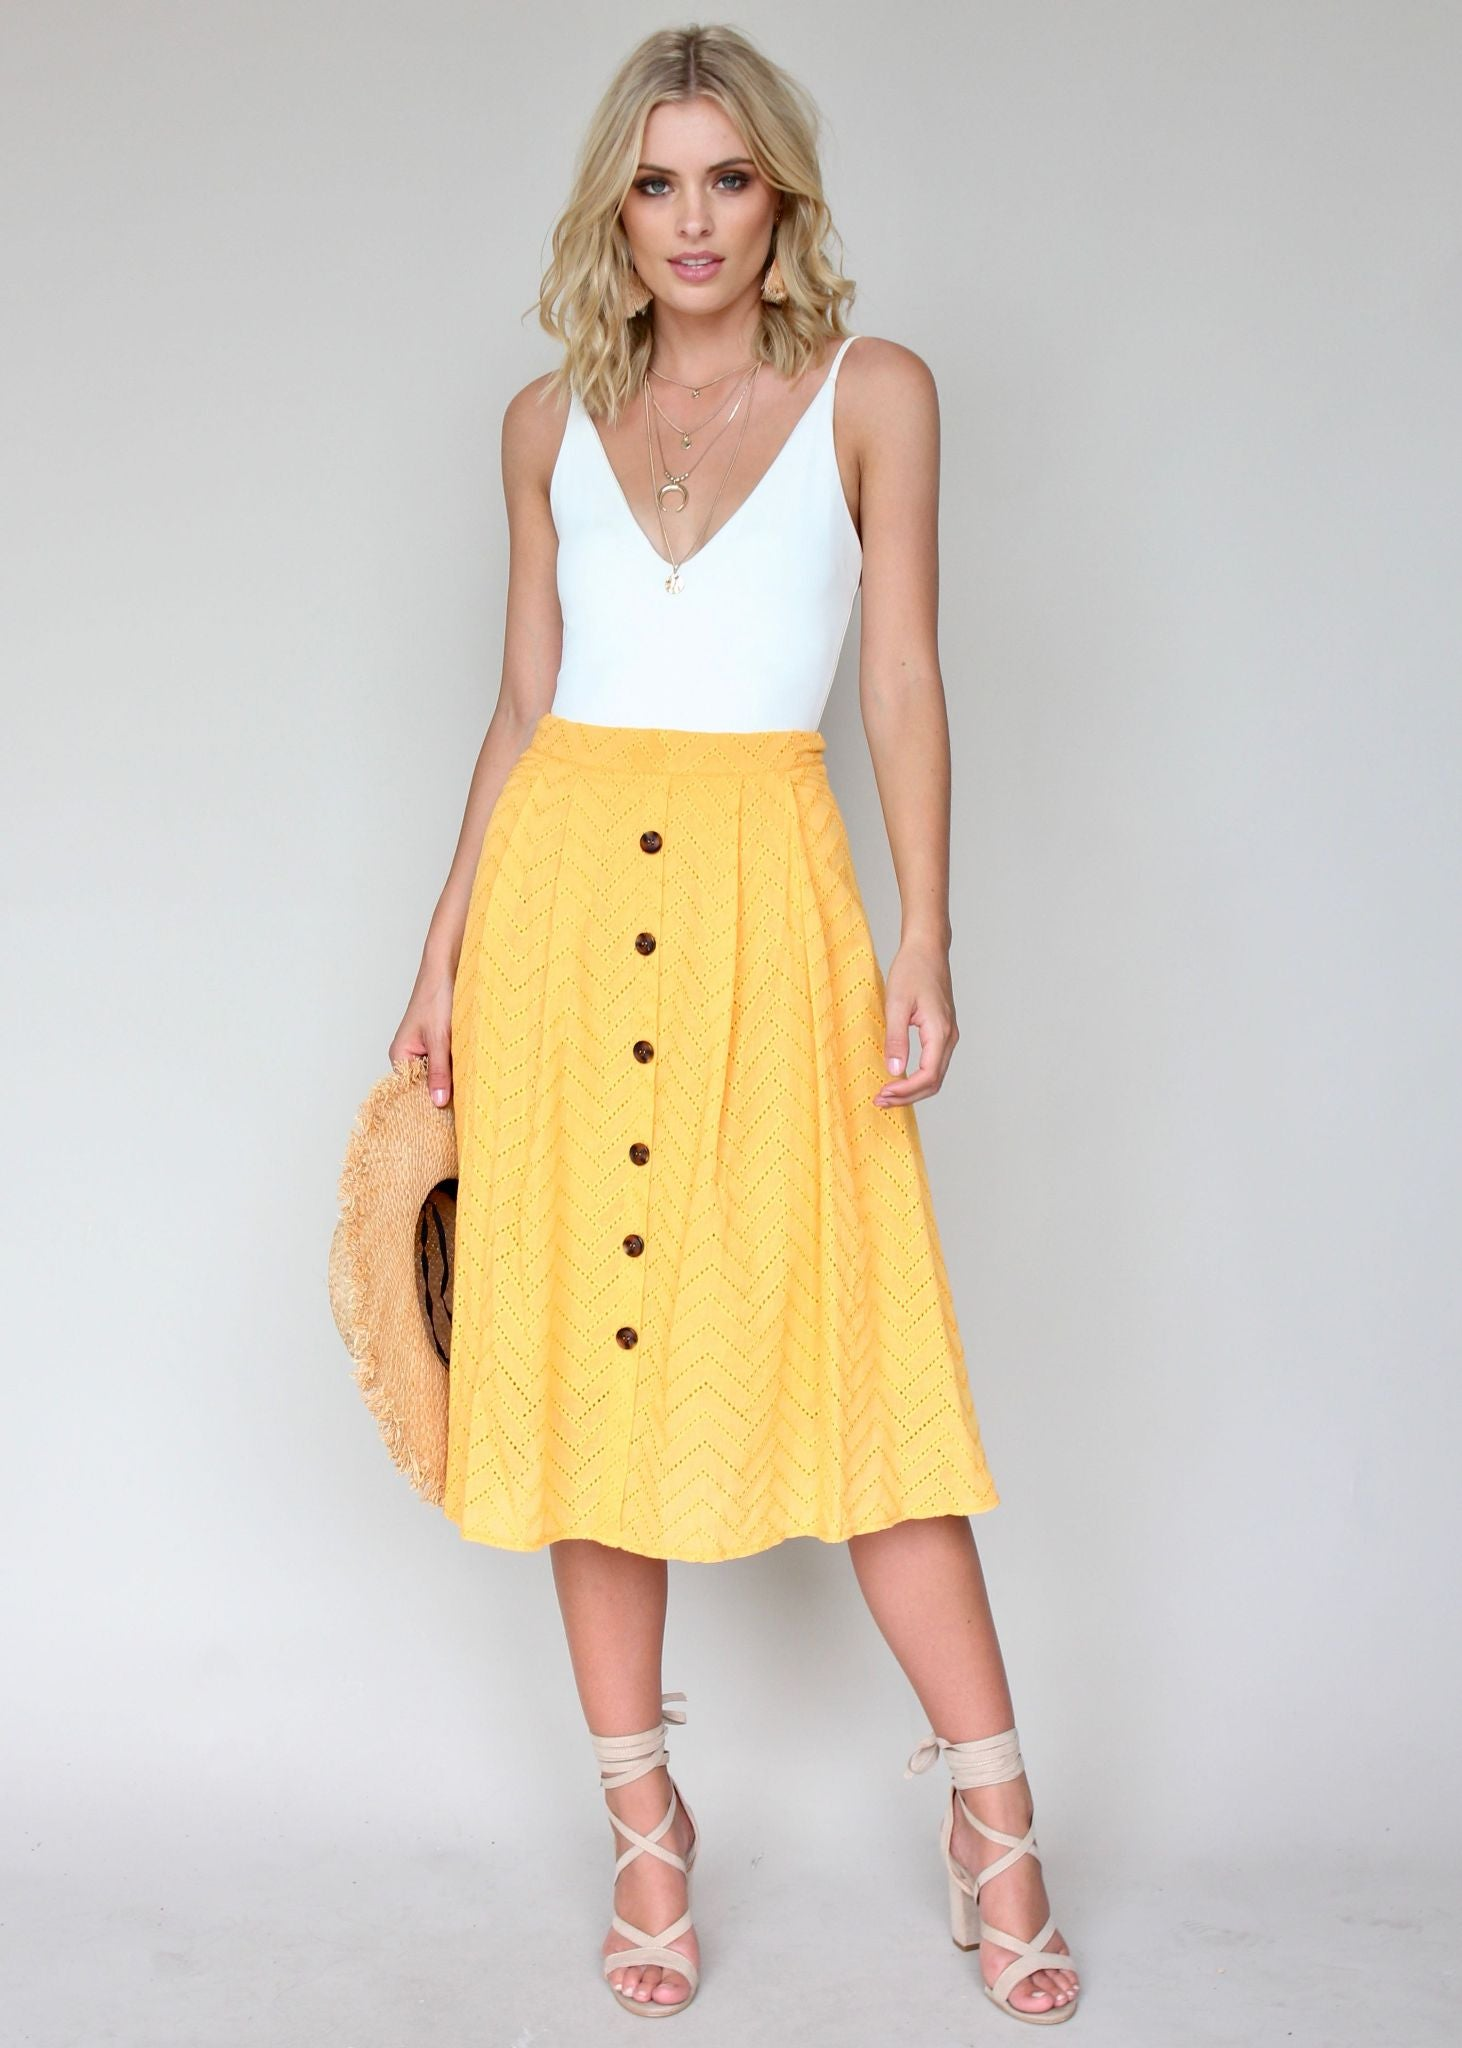 New Wave Midi Skirt - Sun